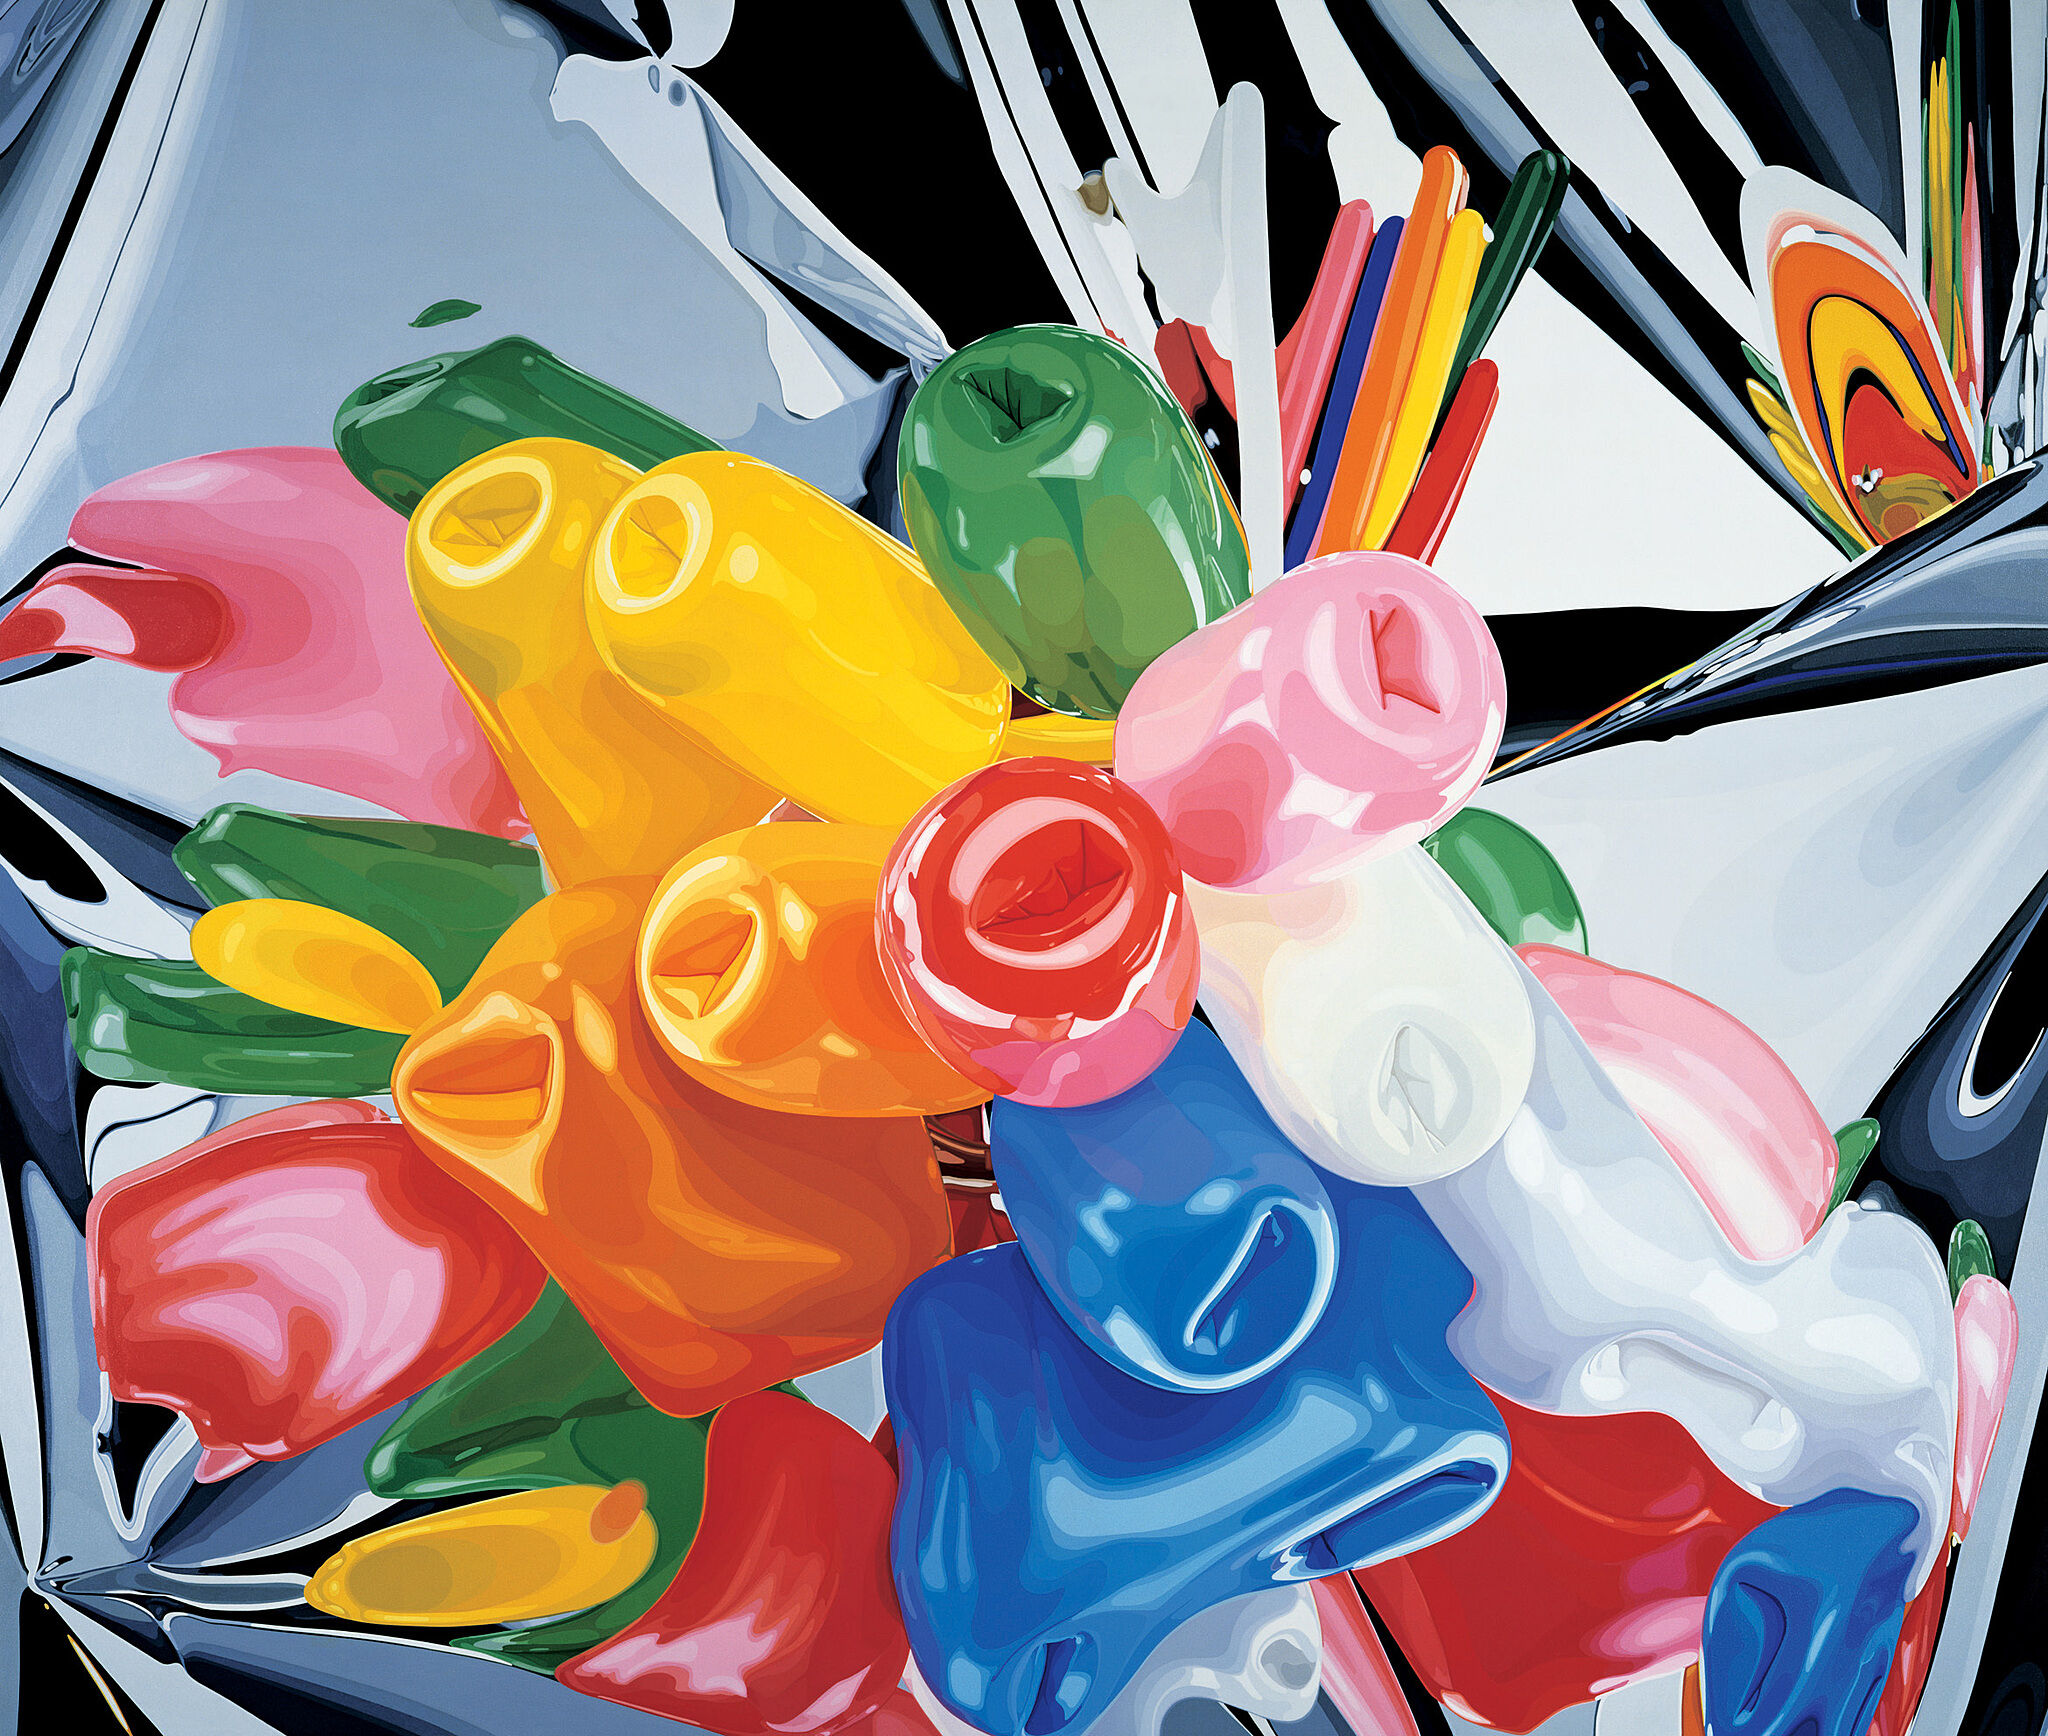 A brightly-colored abstract painting by Jeff Koons. Balloons against a silver backdrop.